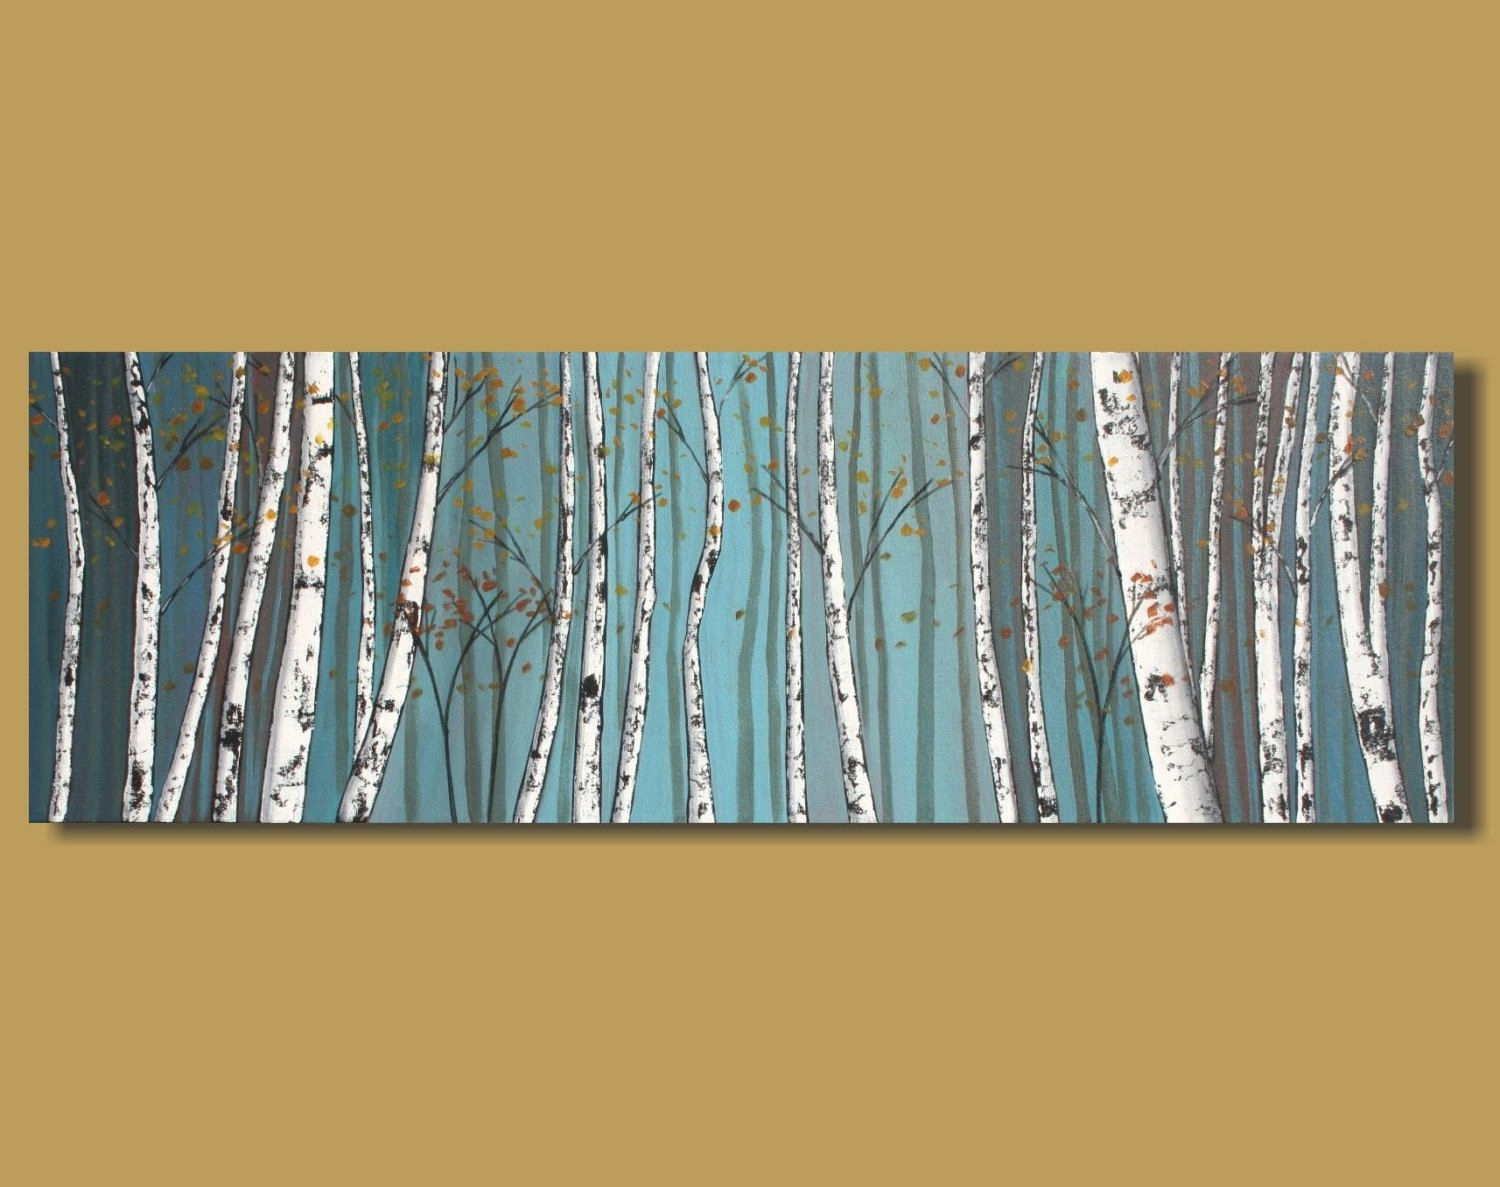 Abstract Painting Of Birch Trees, Panoramic Painting, White Birch In Most Up To Date Horizontal Abstract Wall Art (View 12 of 20)